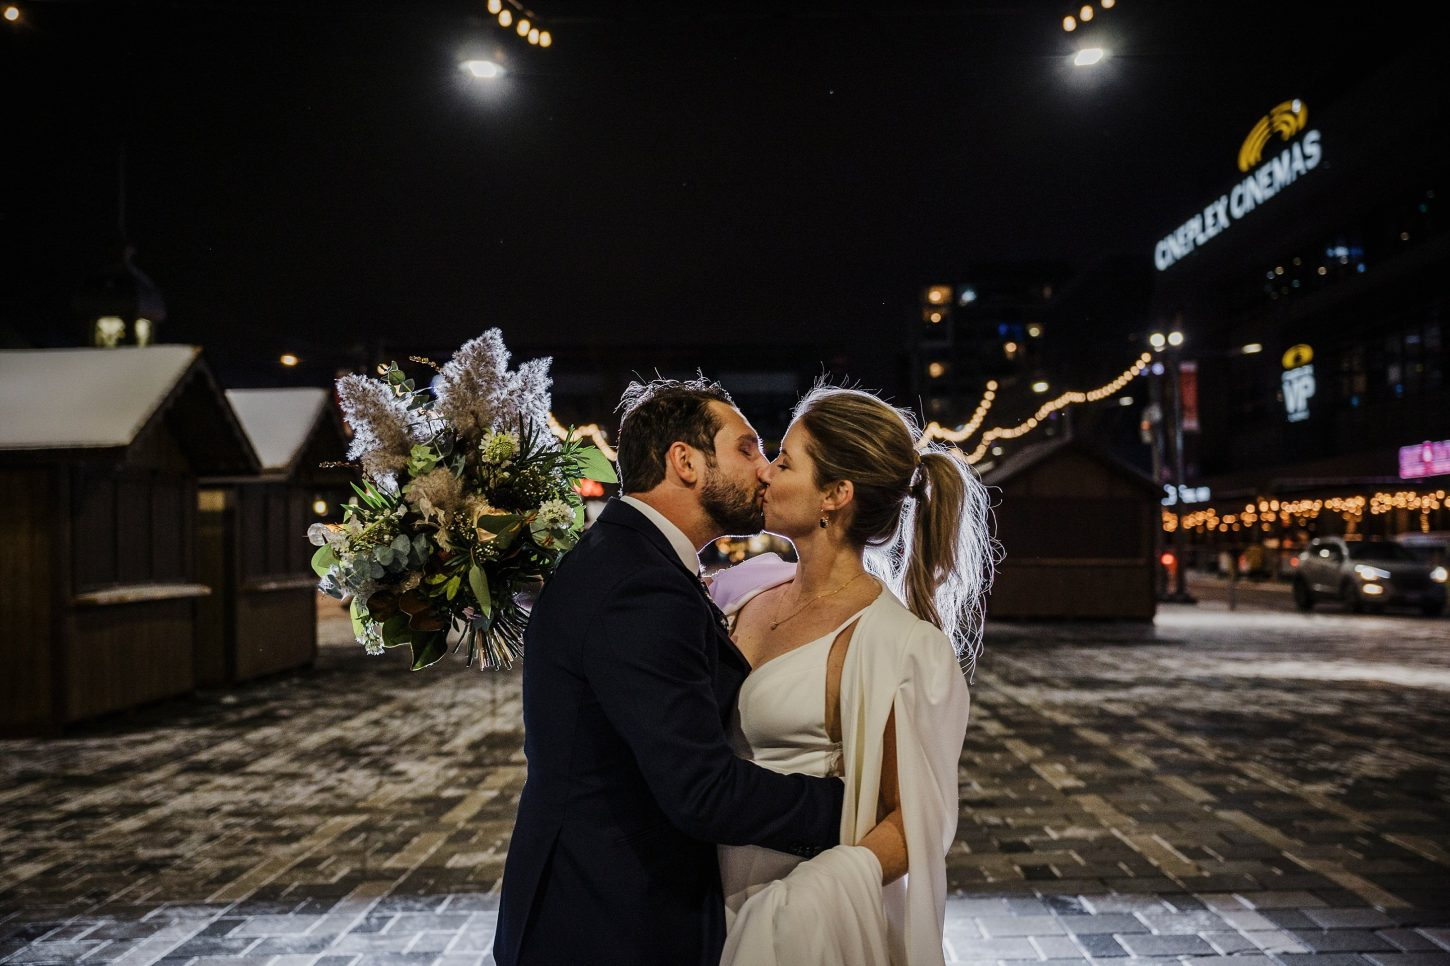 Horticulture Building Winter Wedding